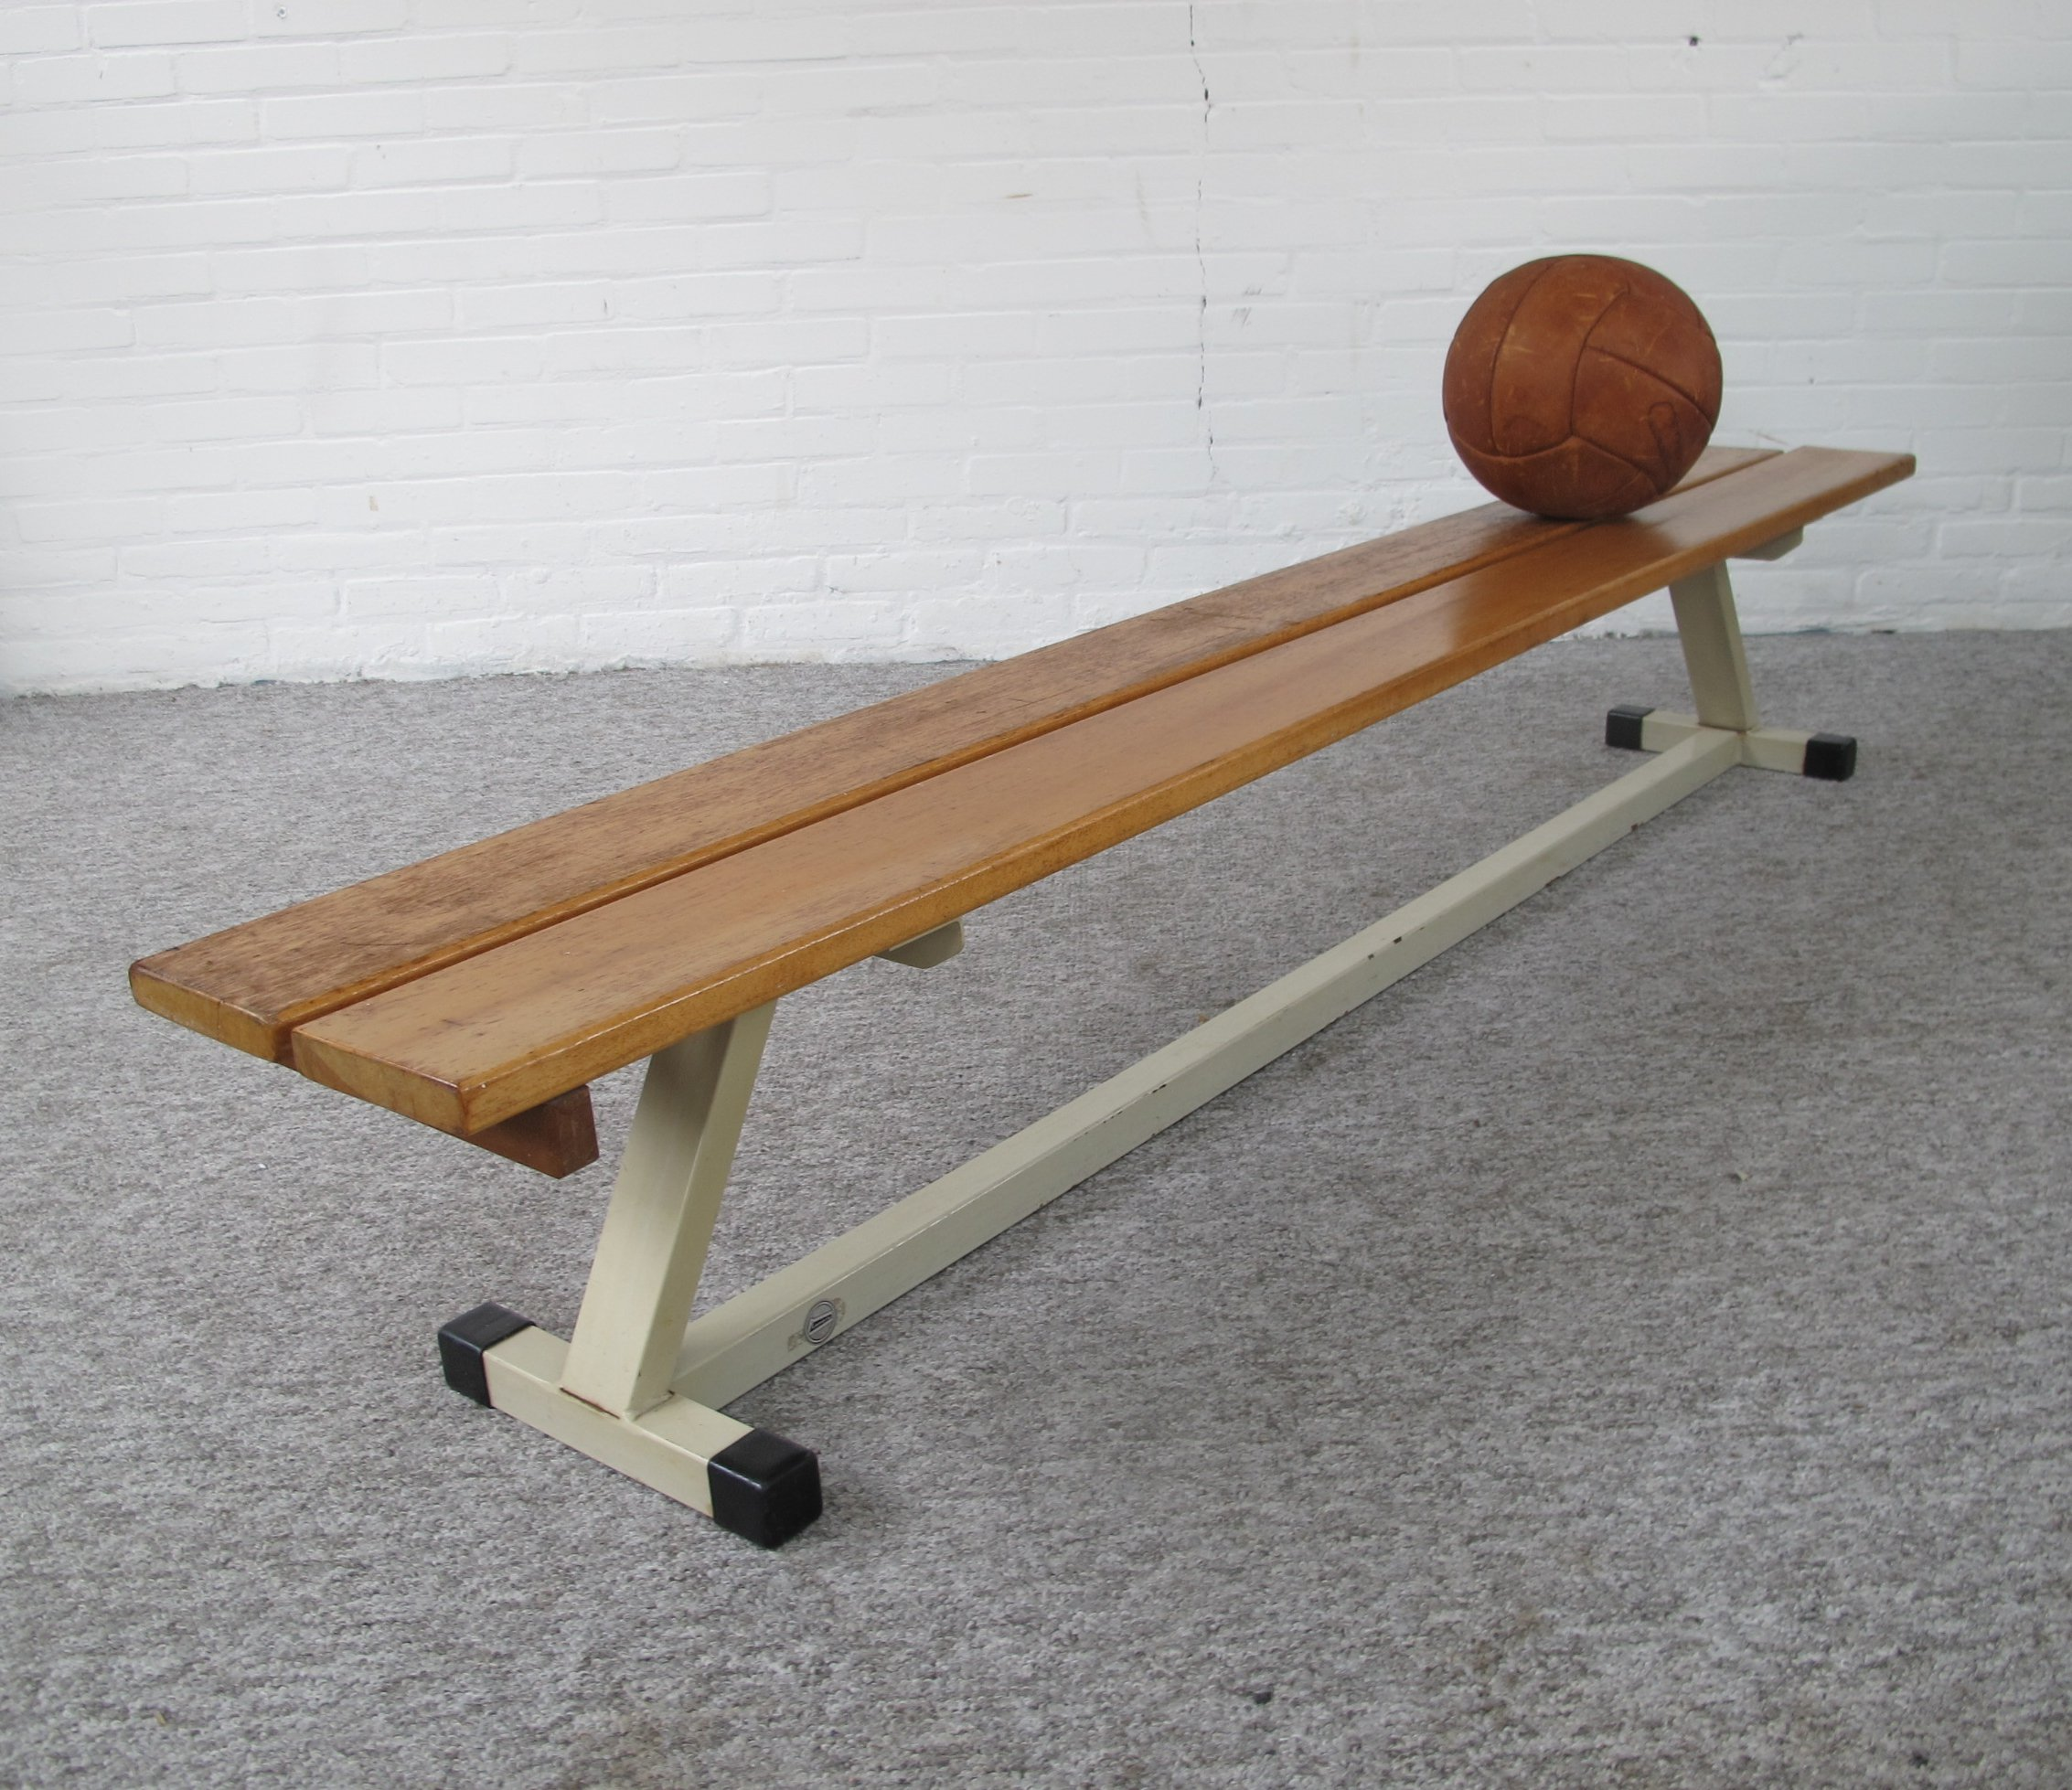 Outstanding School Bench Made Of Metal With Wooden Slats 1960S Machost Co Dining Chair Design Ideas Machostcouk